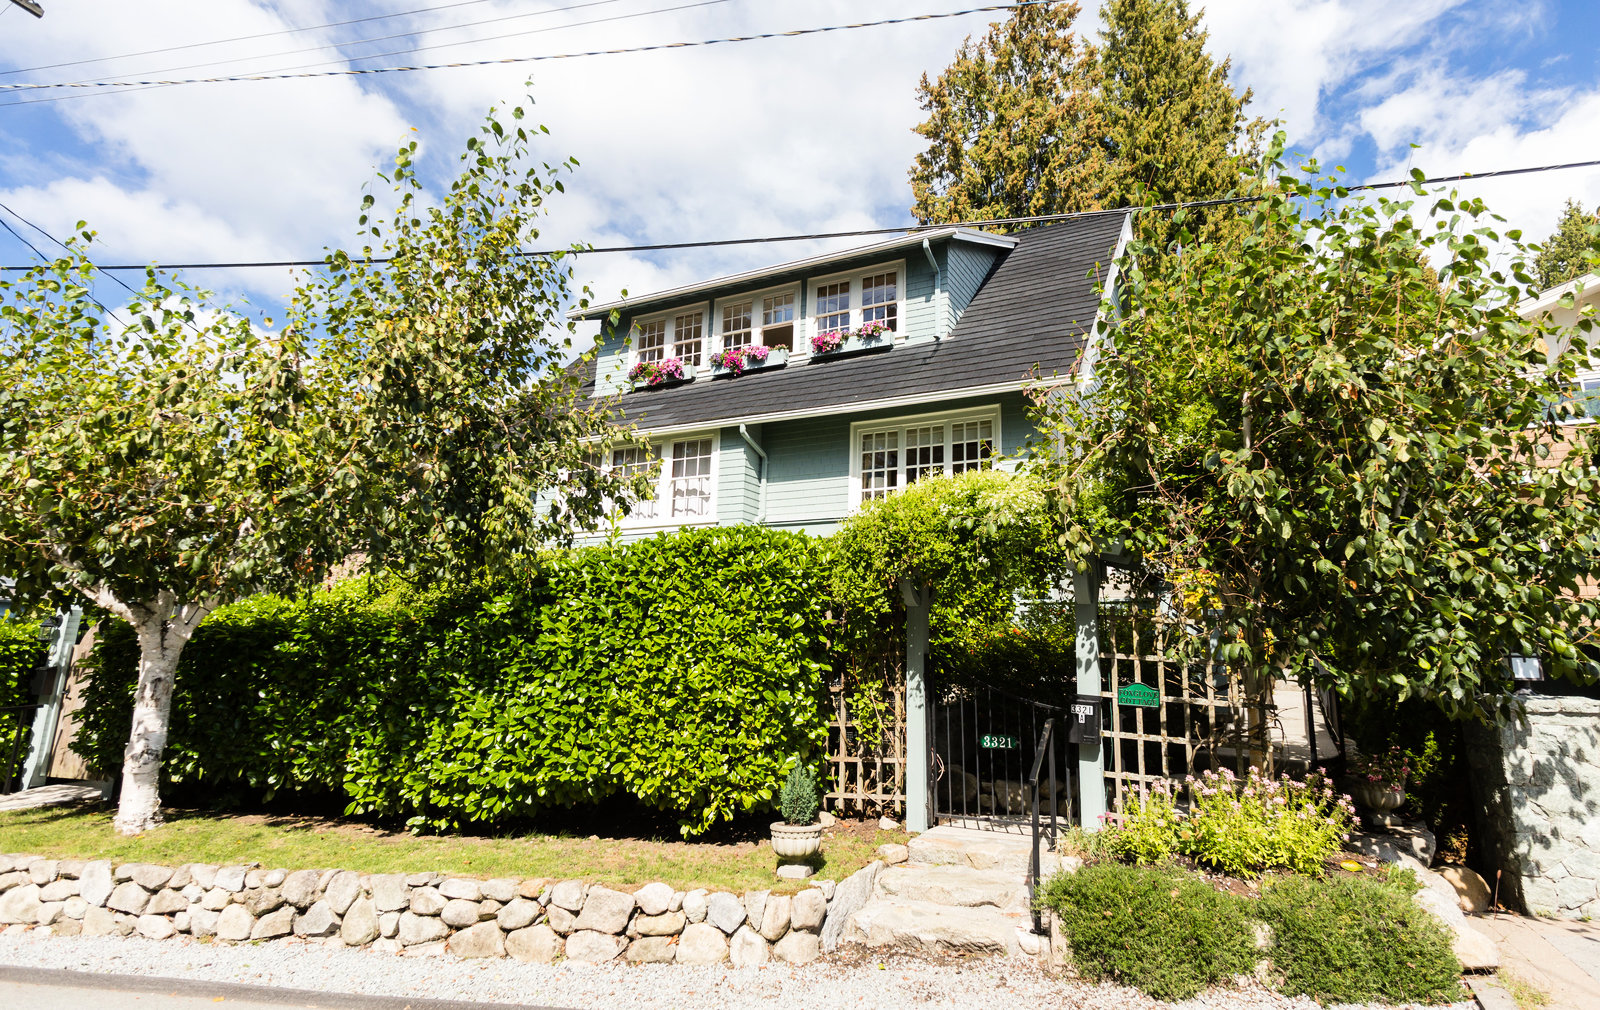 3321 Radcliffe Avenue, West Vancouver, BC - Real Estate by Tom Hassan